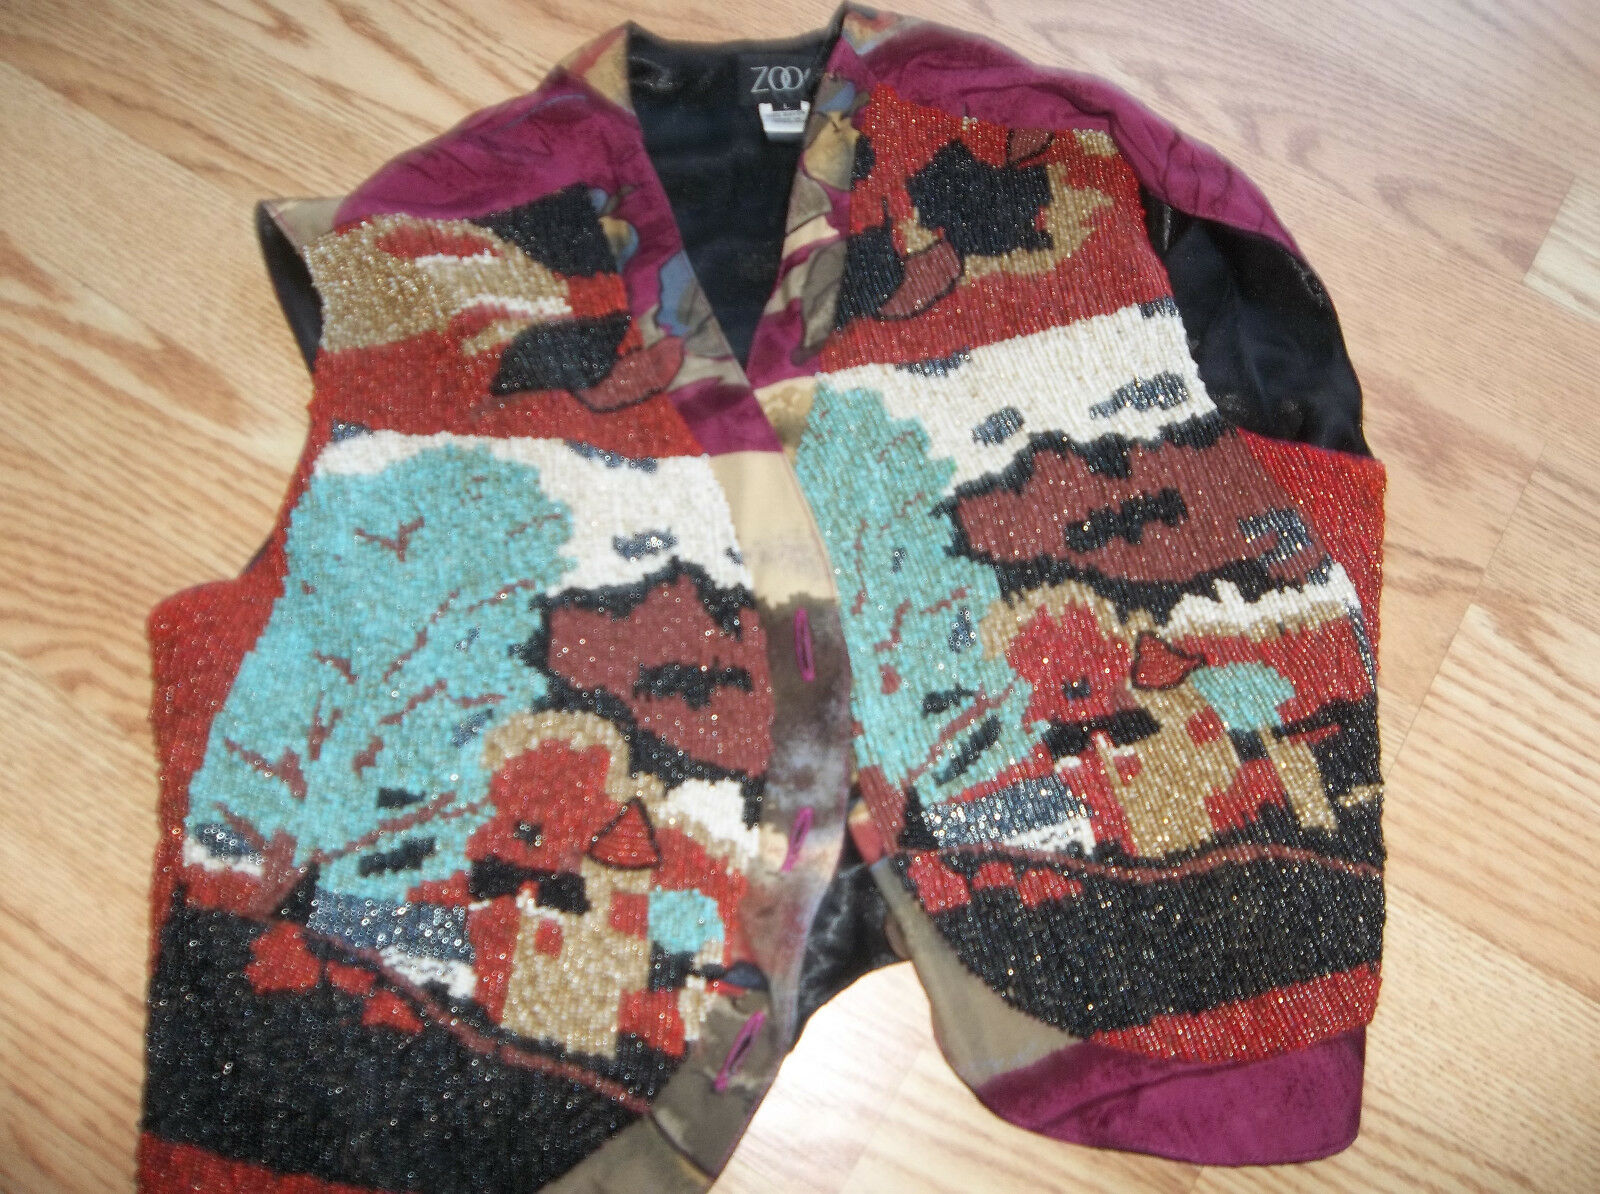 Zoog Beaded Vest size large tribial scene  indonesia fall colors